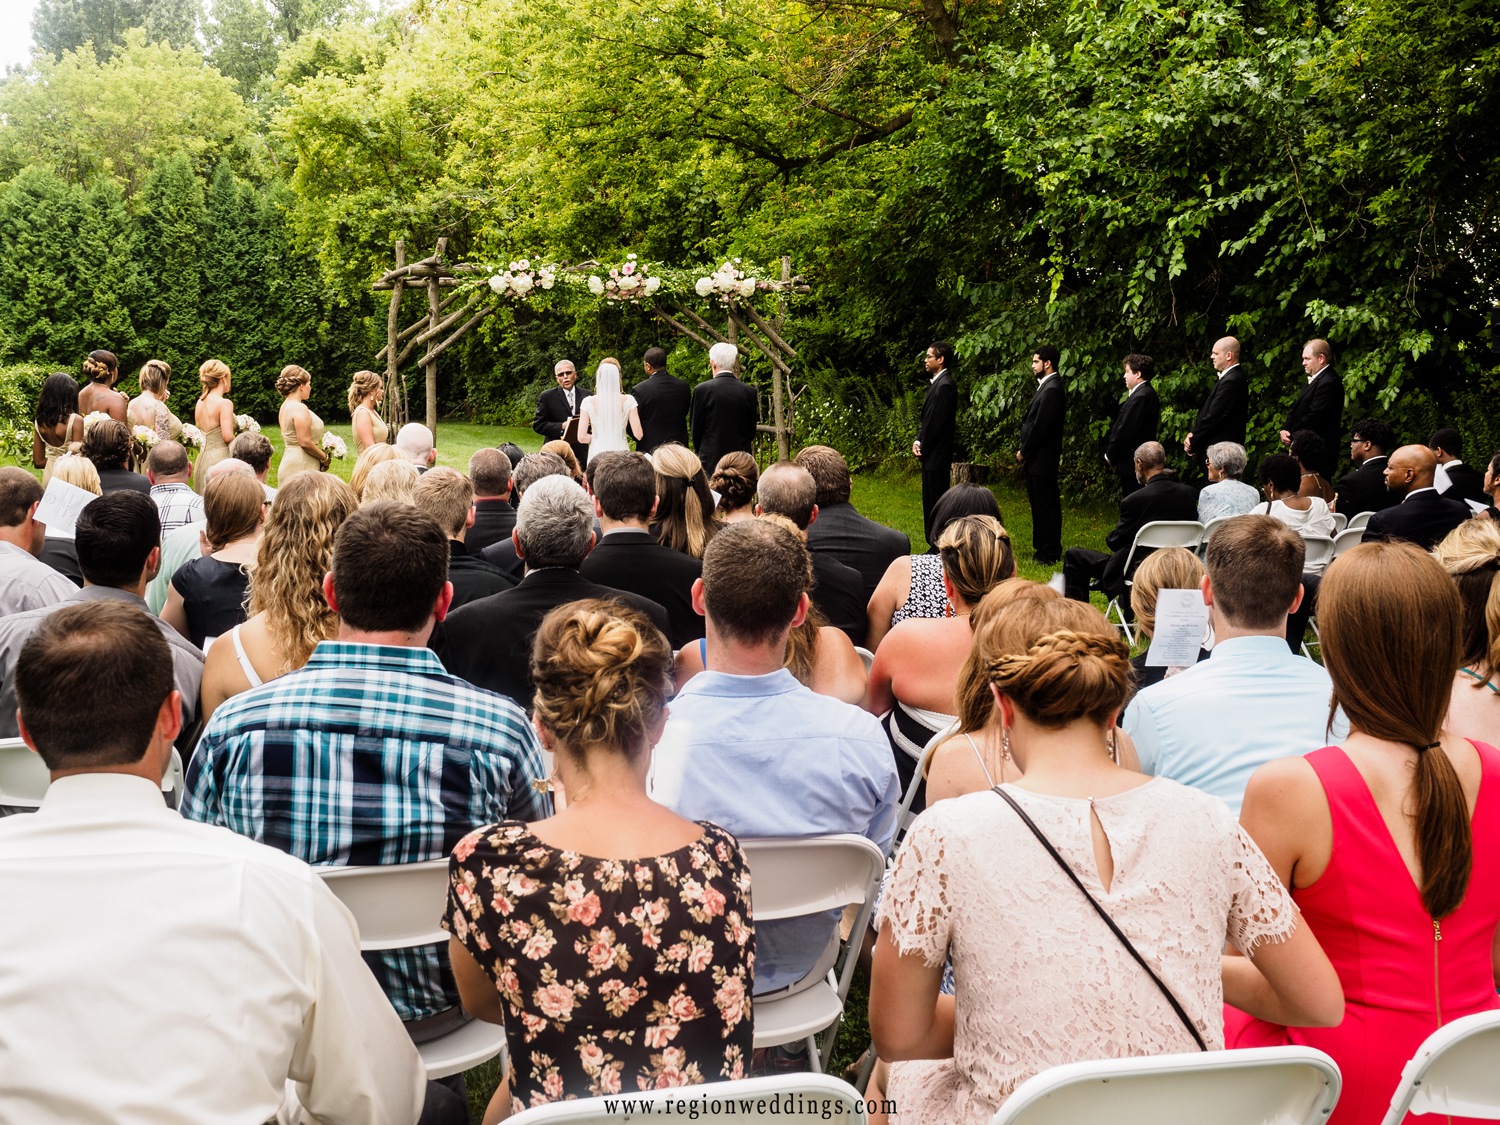 A summer wedding ceremony at County Line Orchard in Hobart, Indiana.